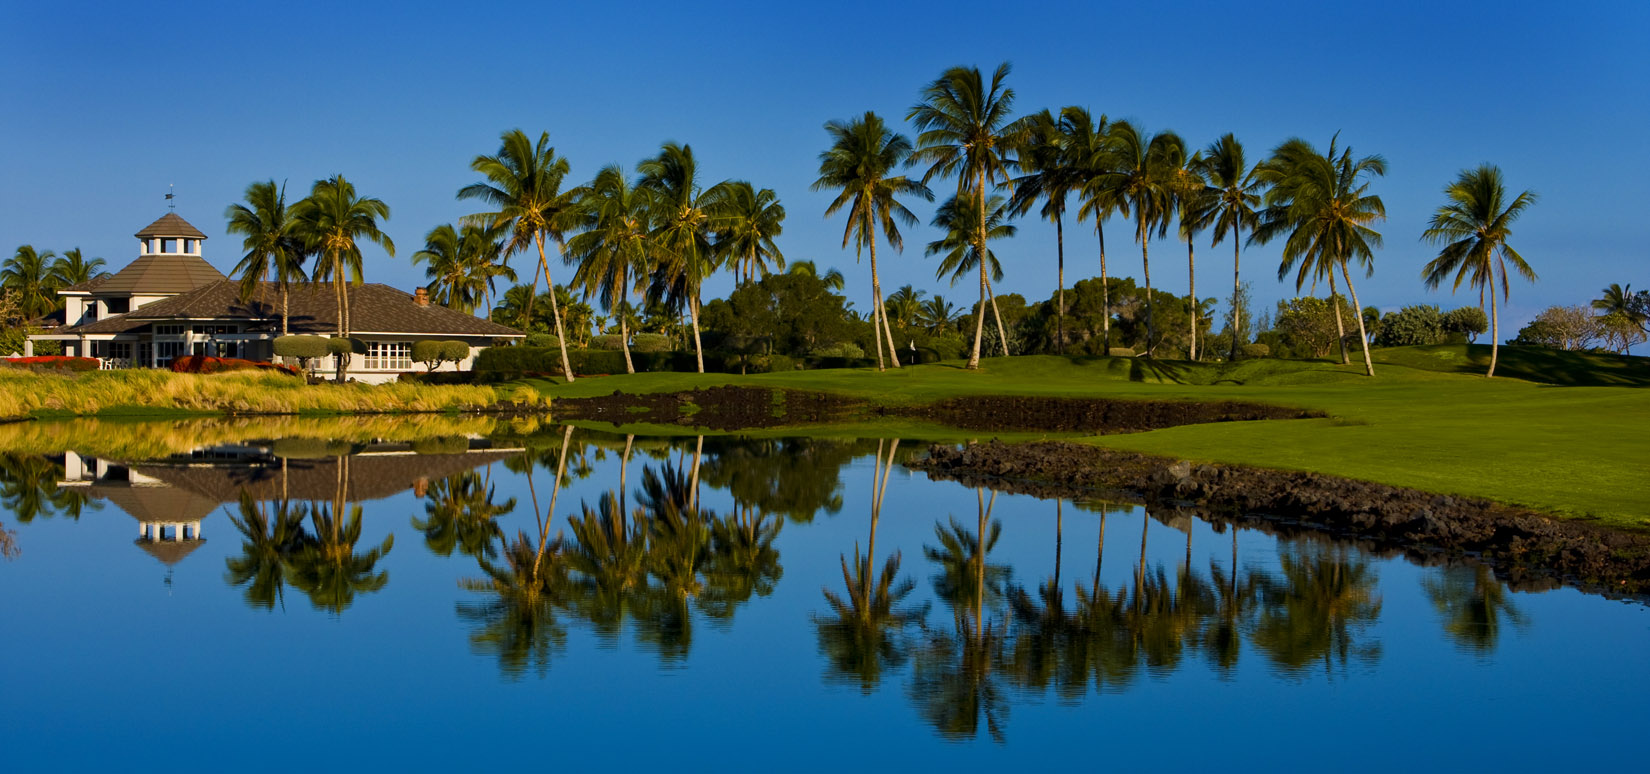 Waikoloa Beach Resort Kings Course #16 - 1235.jpg